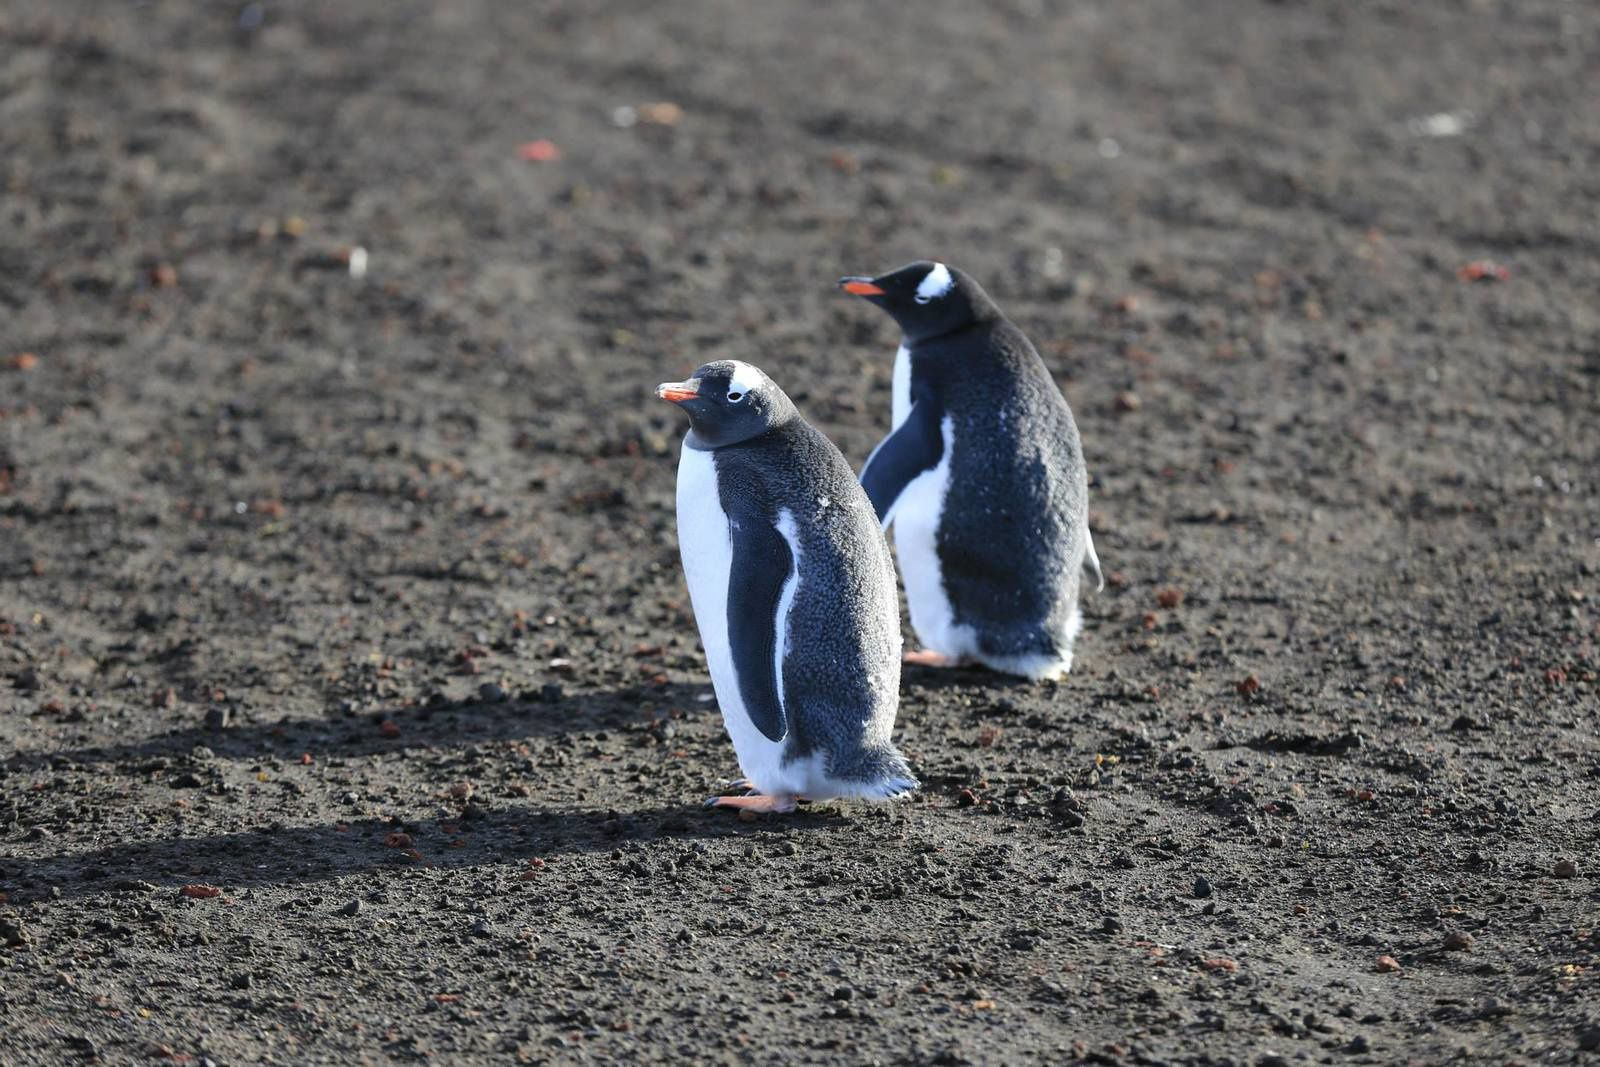 Deception Island - Gentoo penguins - photo Antony Van Eeten 03.2014